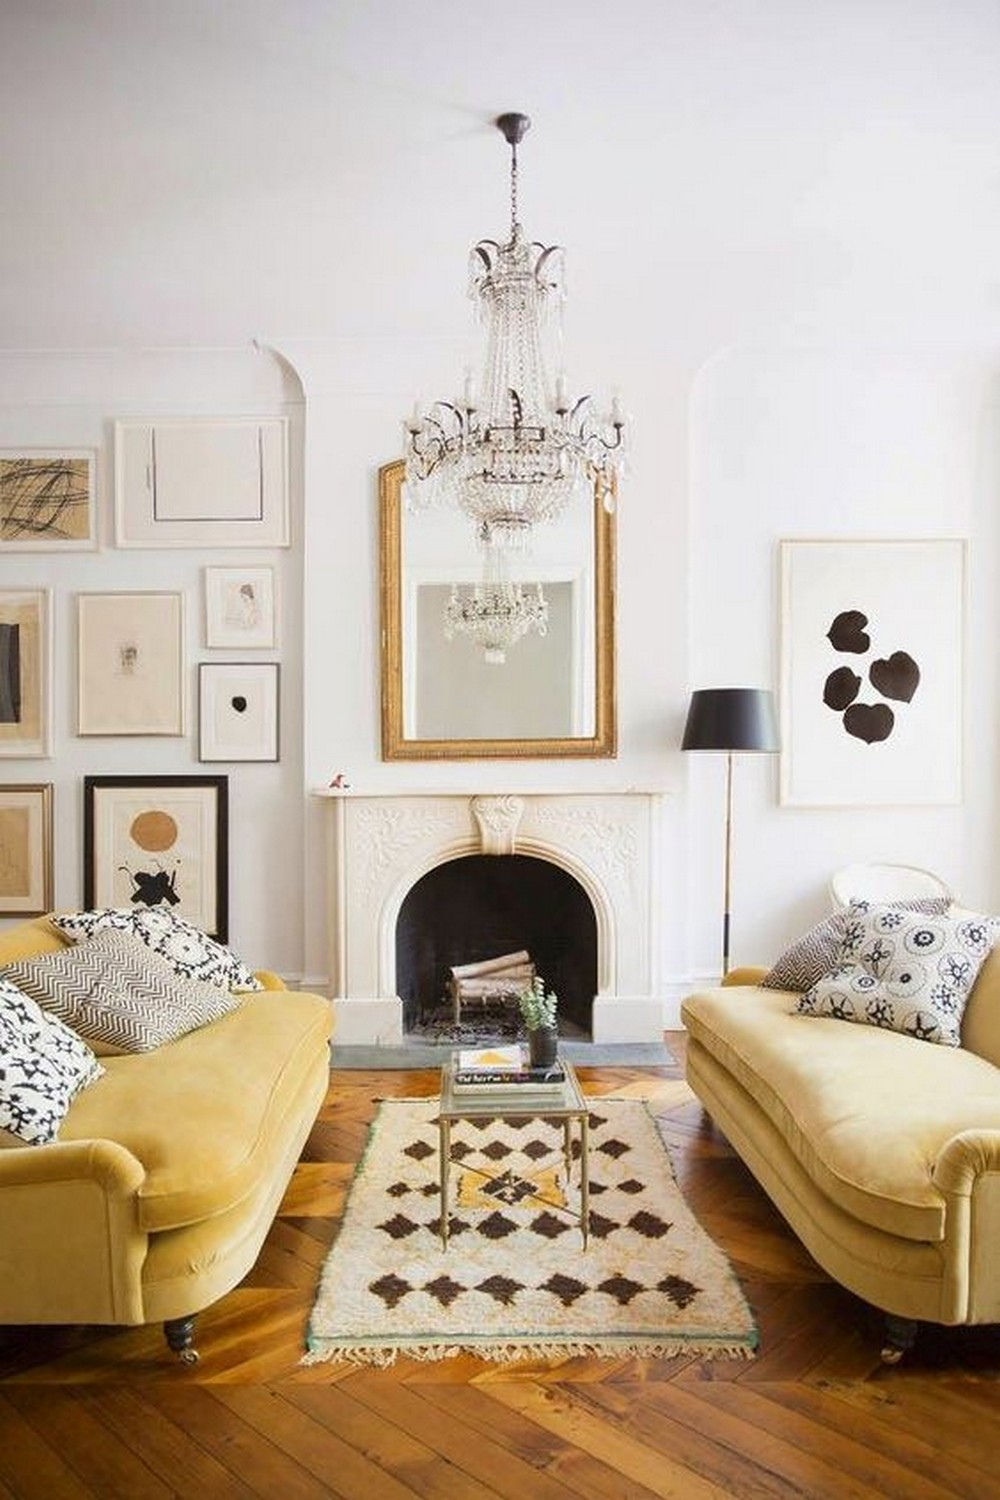 Yellow Mellow Yellow Mellow: feel inspired by this 2019 interior design trend a1980adde28aa7be15a240aa25532a86